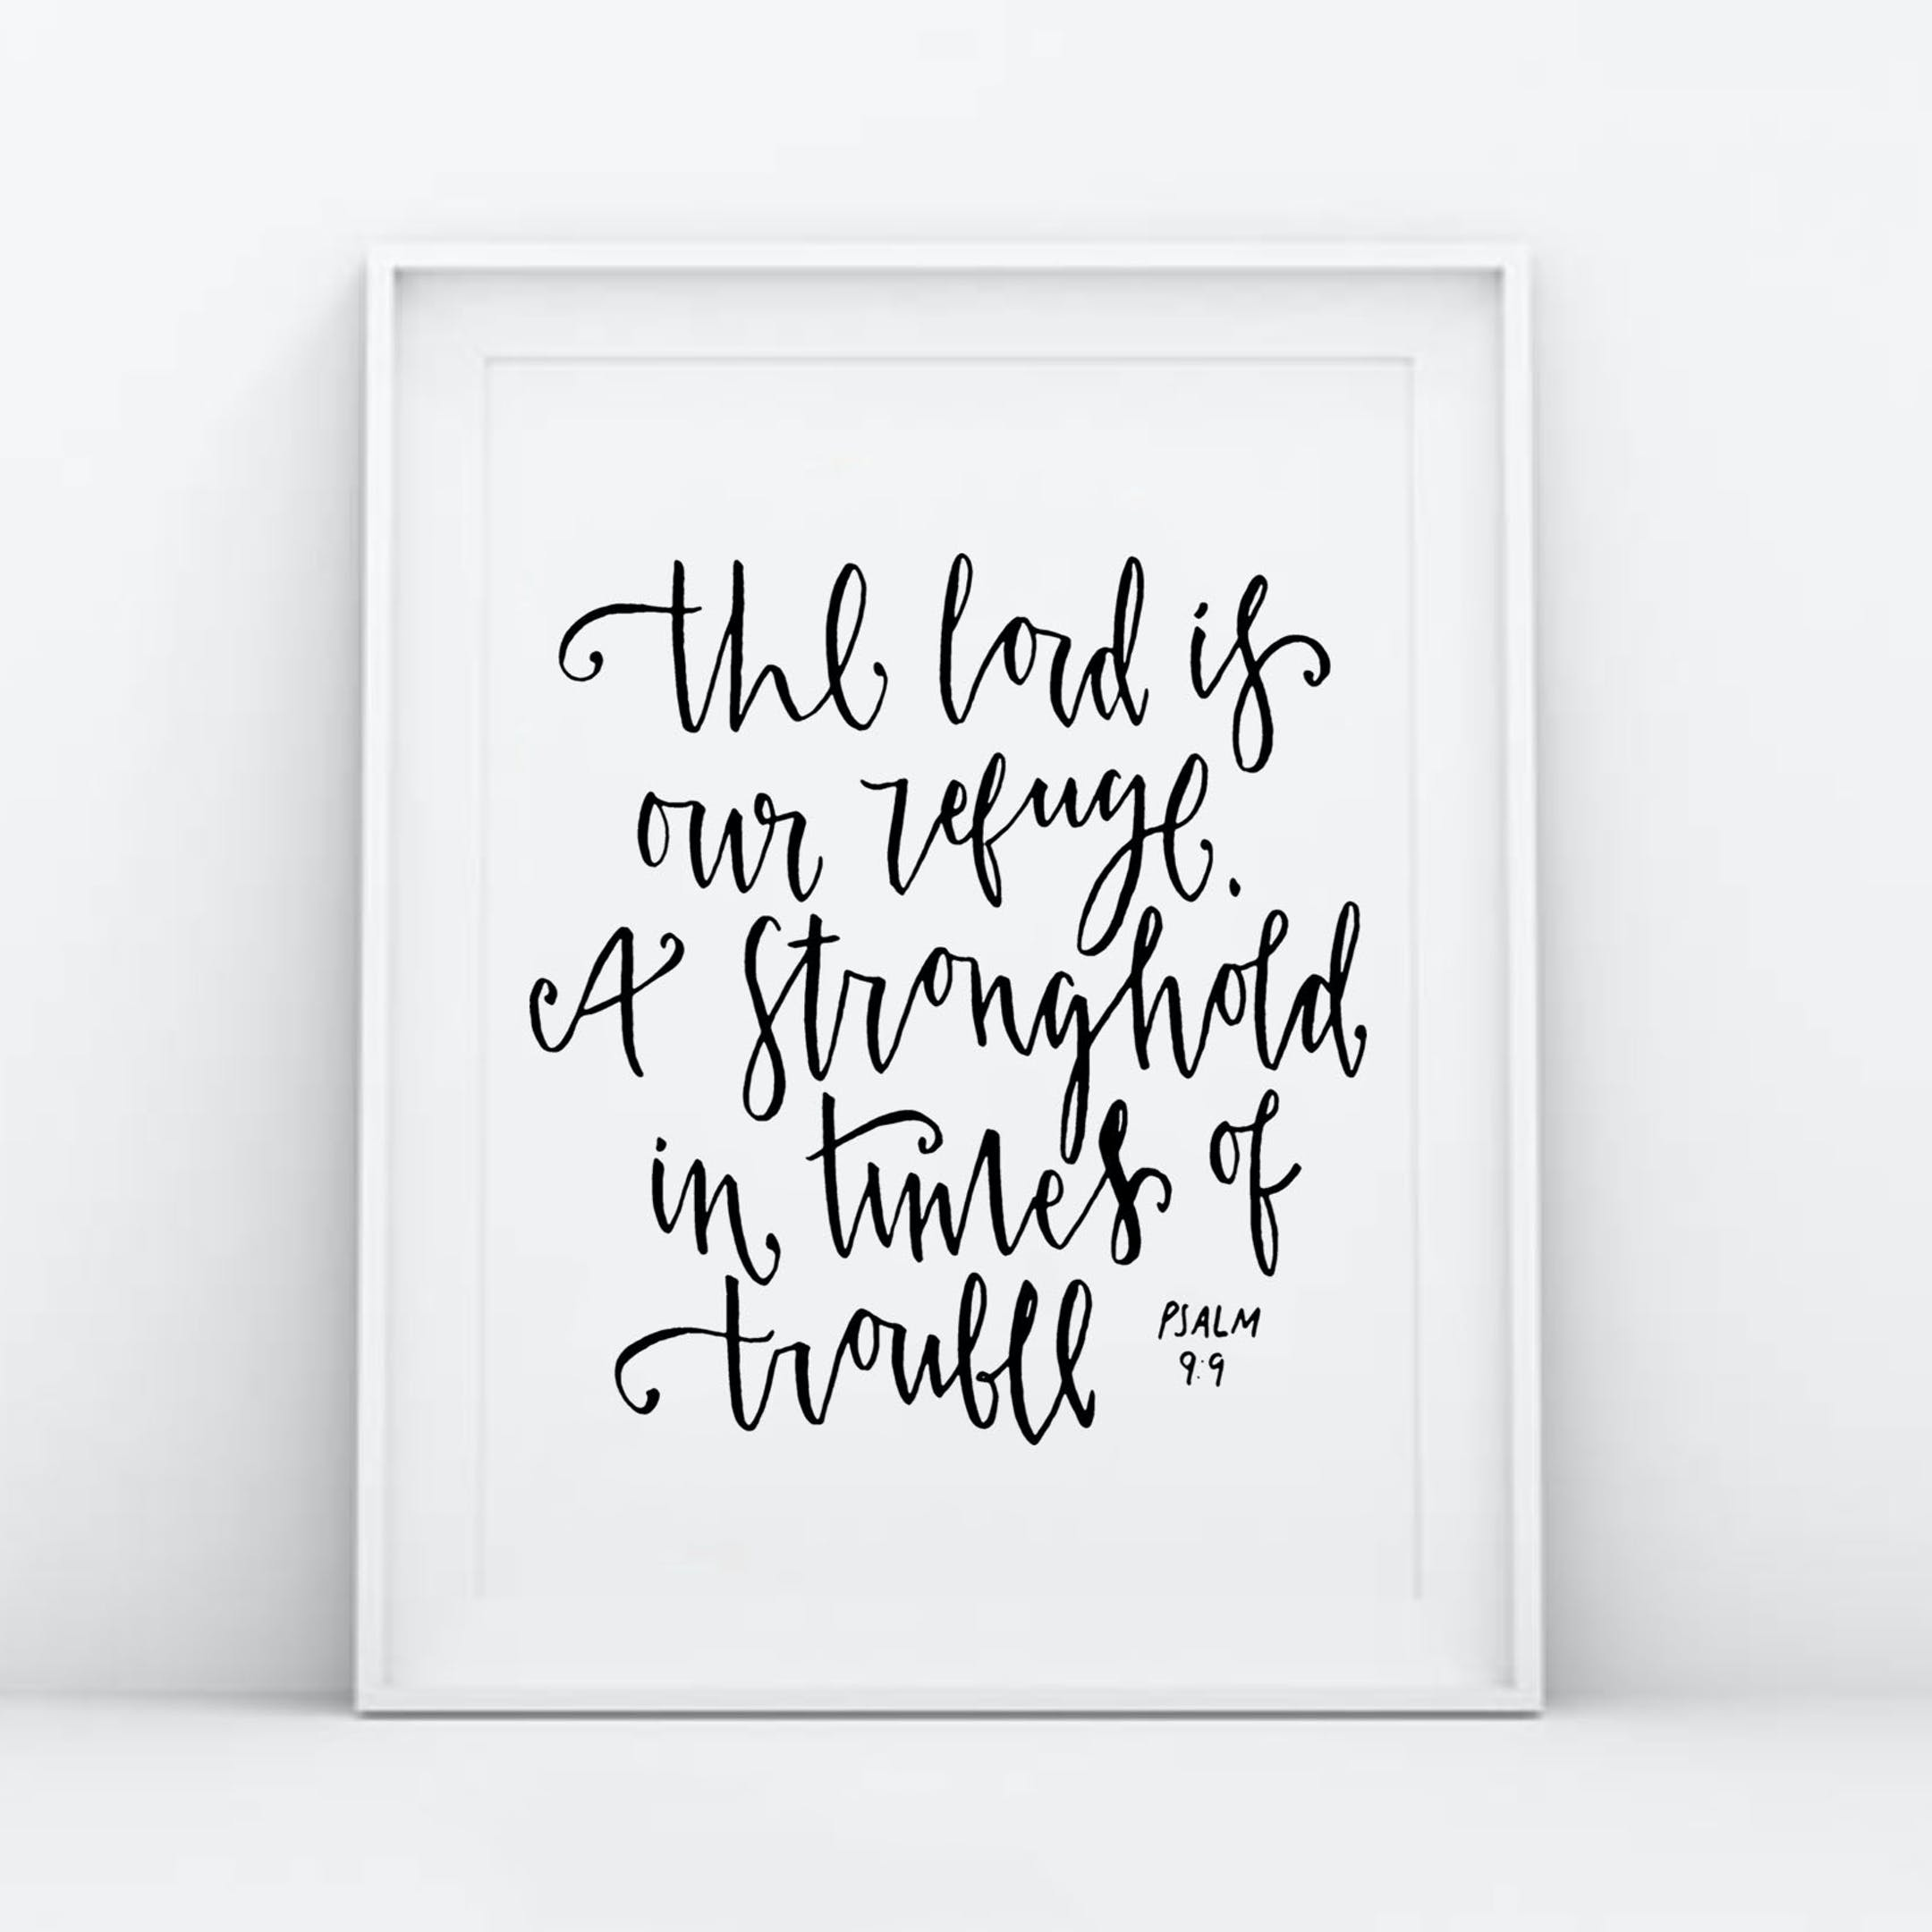 Psalm 9:9 Print - The Lord Is Our Refuge - Christian Lettering Company